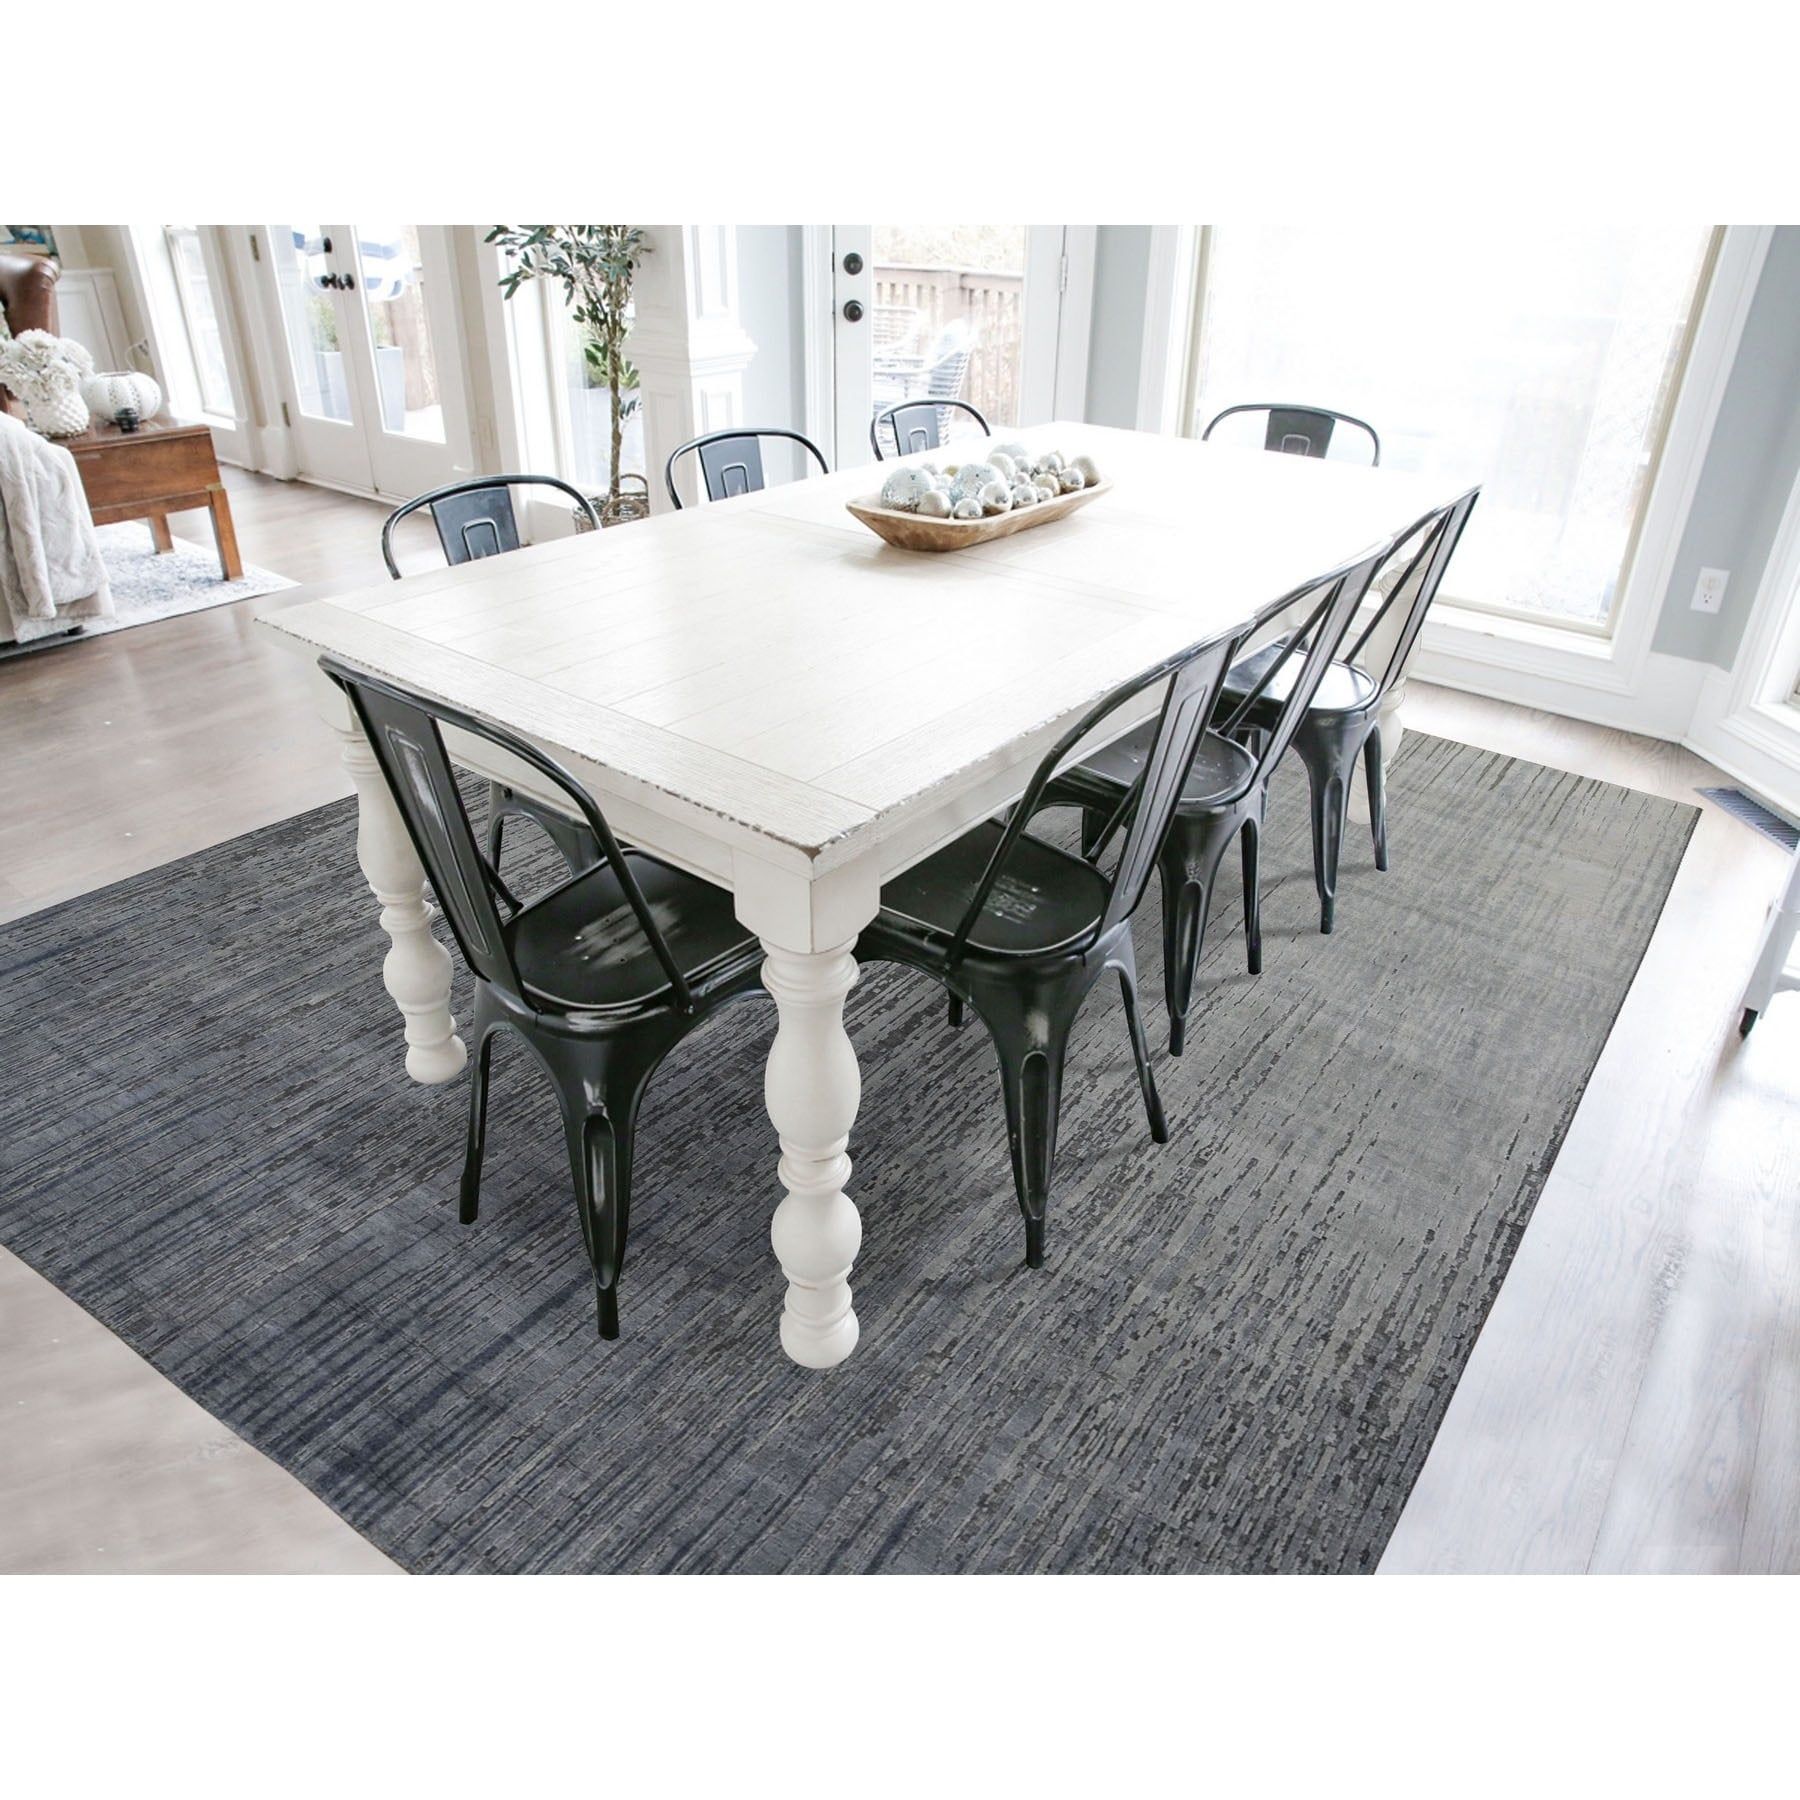 Shop Shahbanu Rugs Gray Ombre Design Pure Silk Hand Knotted Oriental Rug 7 10 X 10 2 7 10 X 10 2 On Sale Overstock 31425374